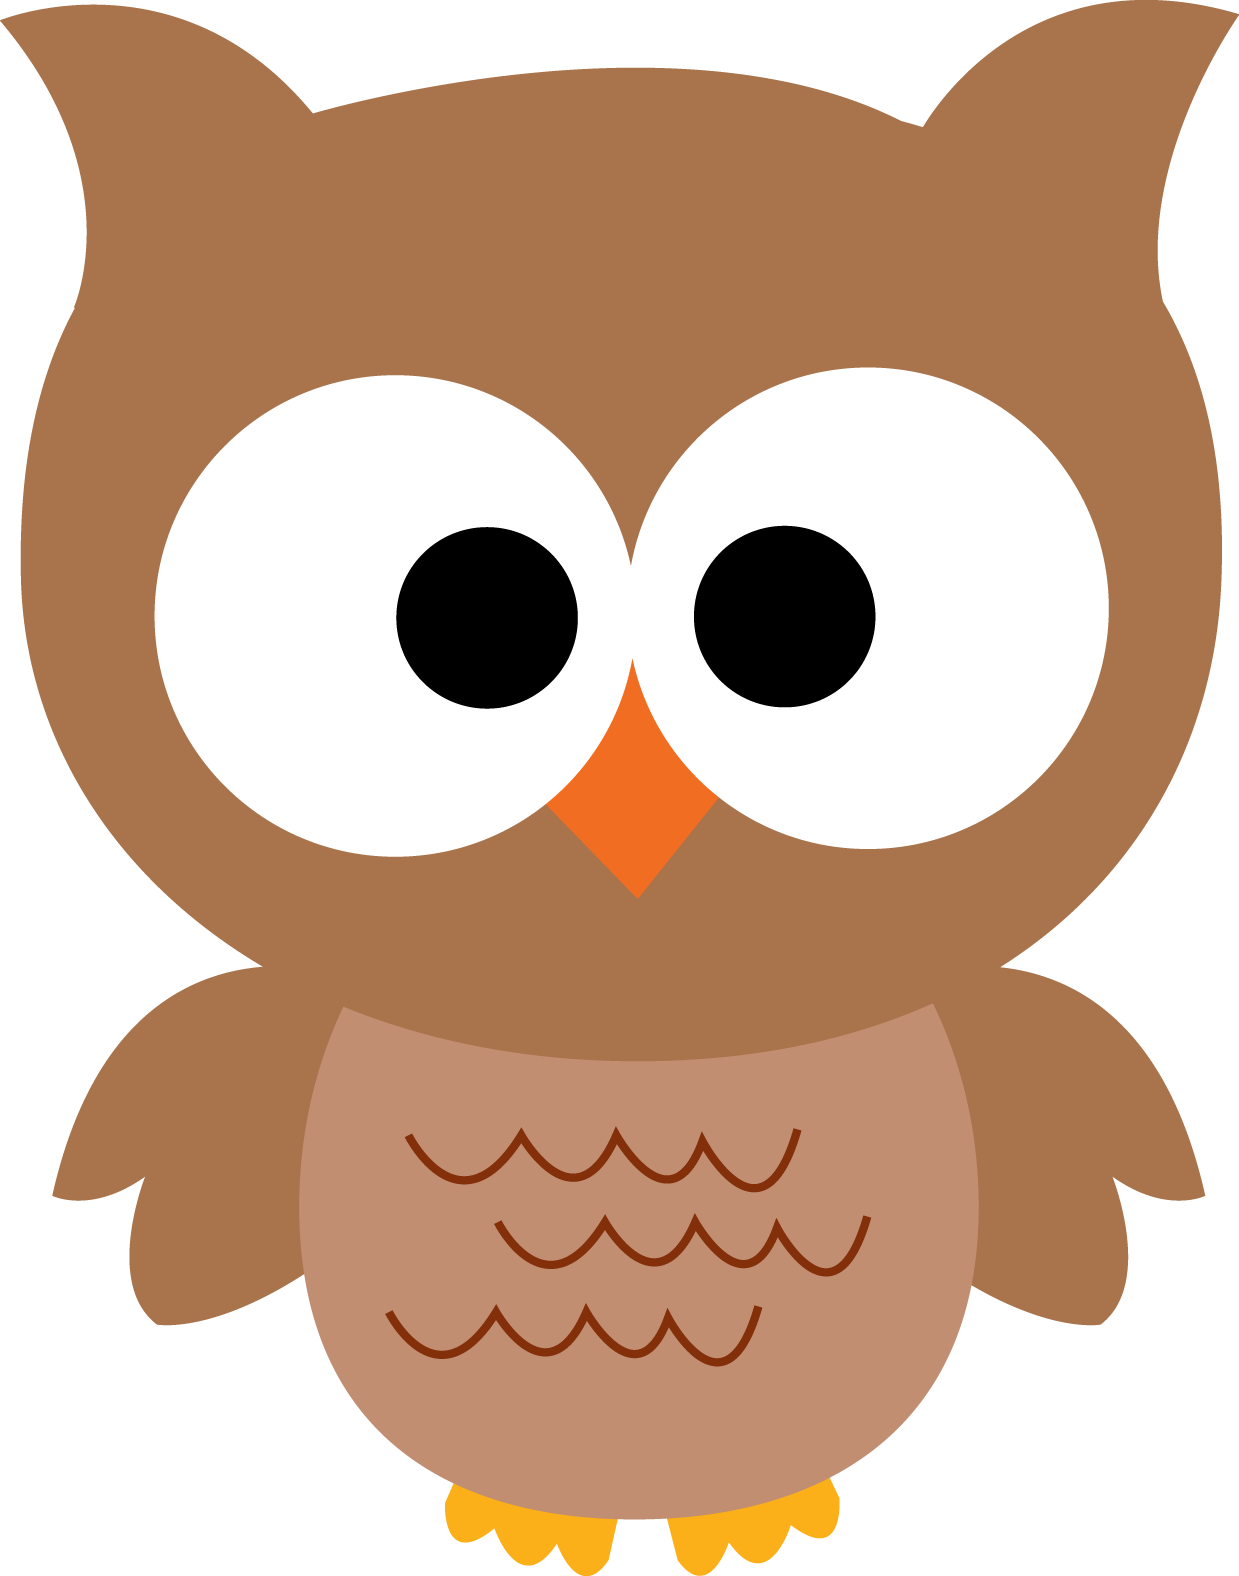 Owl cartoon png. Noted pic vector illustration